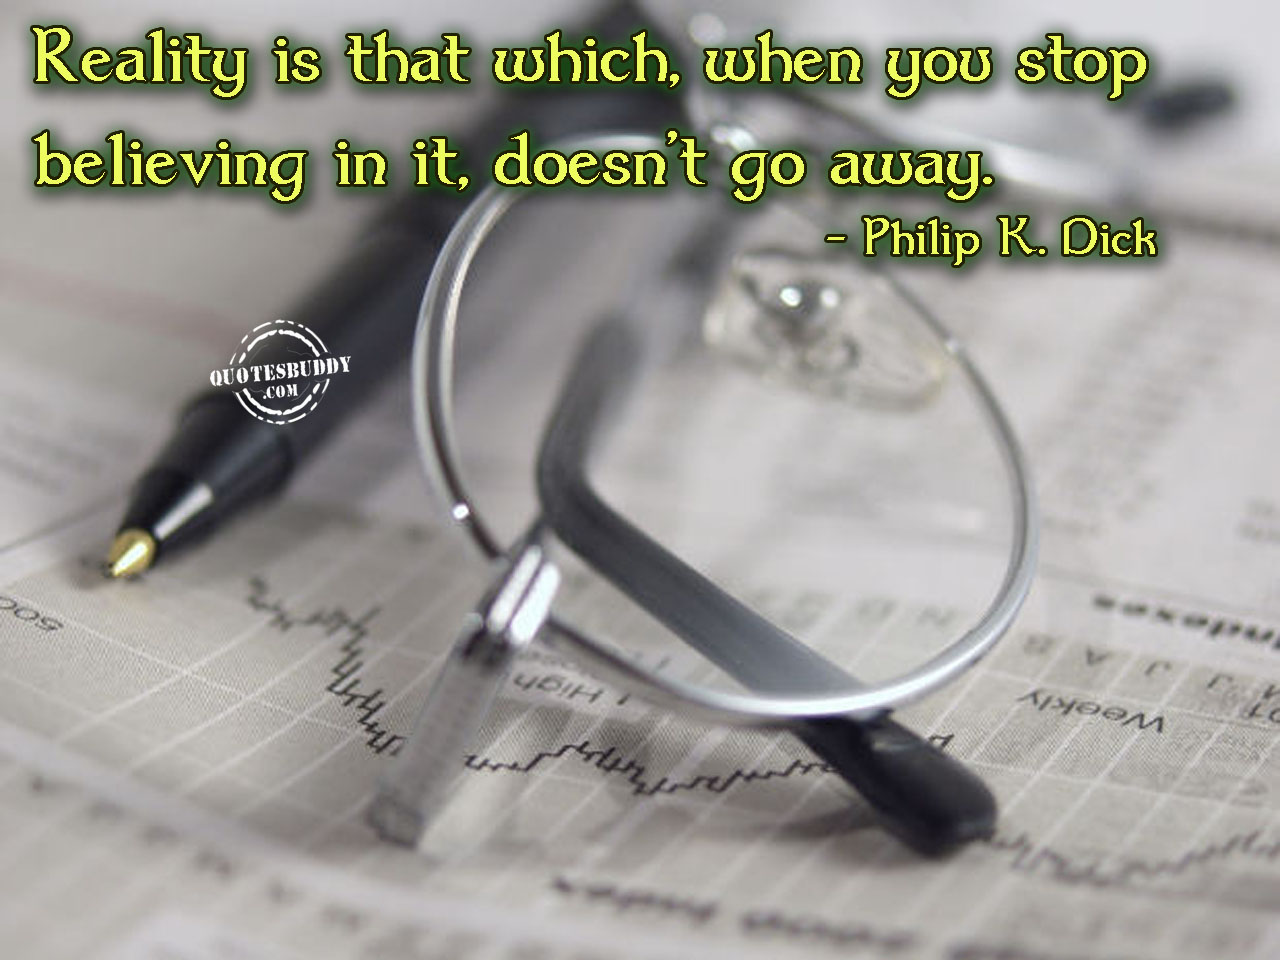 Reality Is That Which When You Stop Believing In It, Doesn't Go Away. - Philip K. Dick